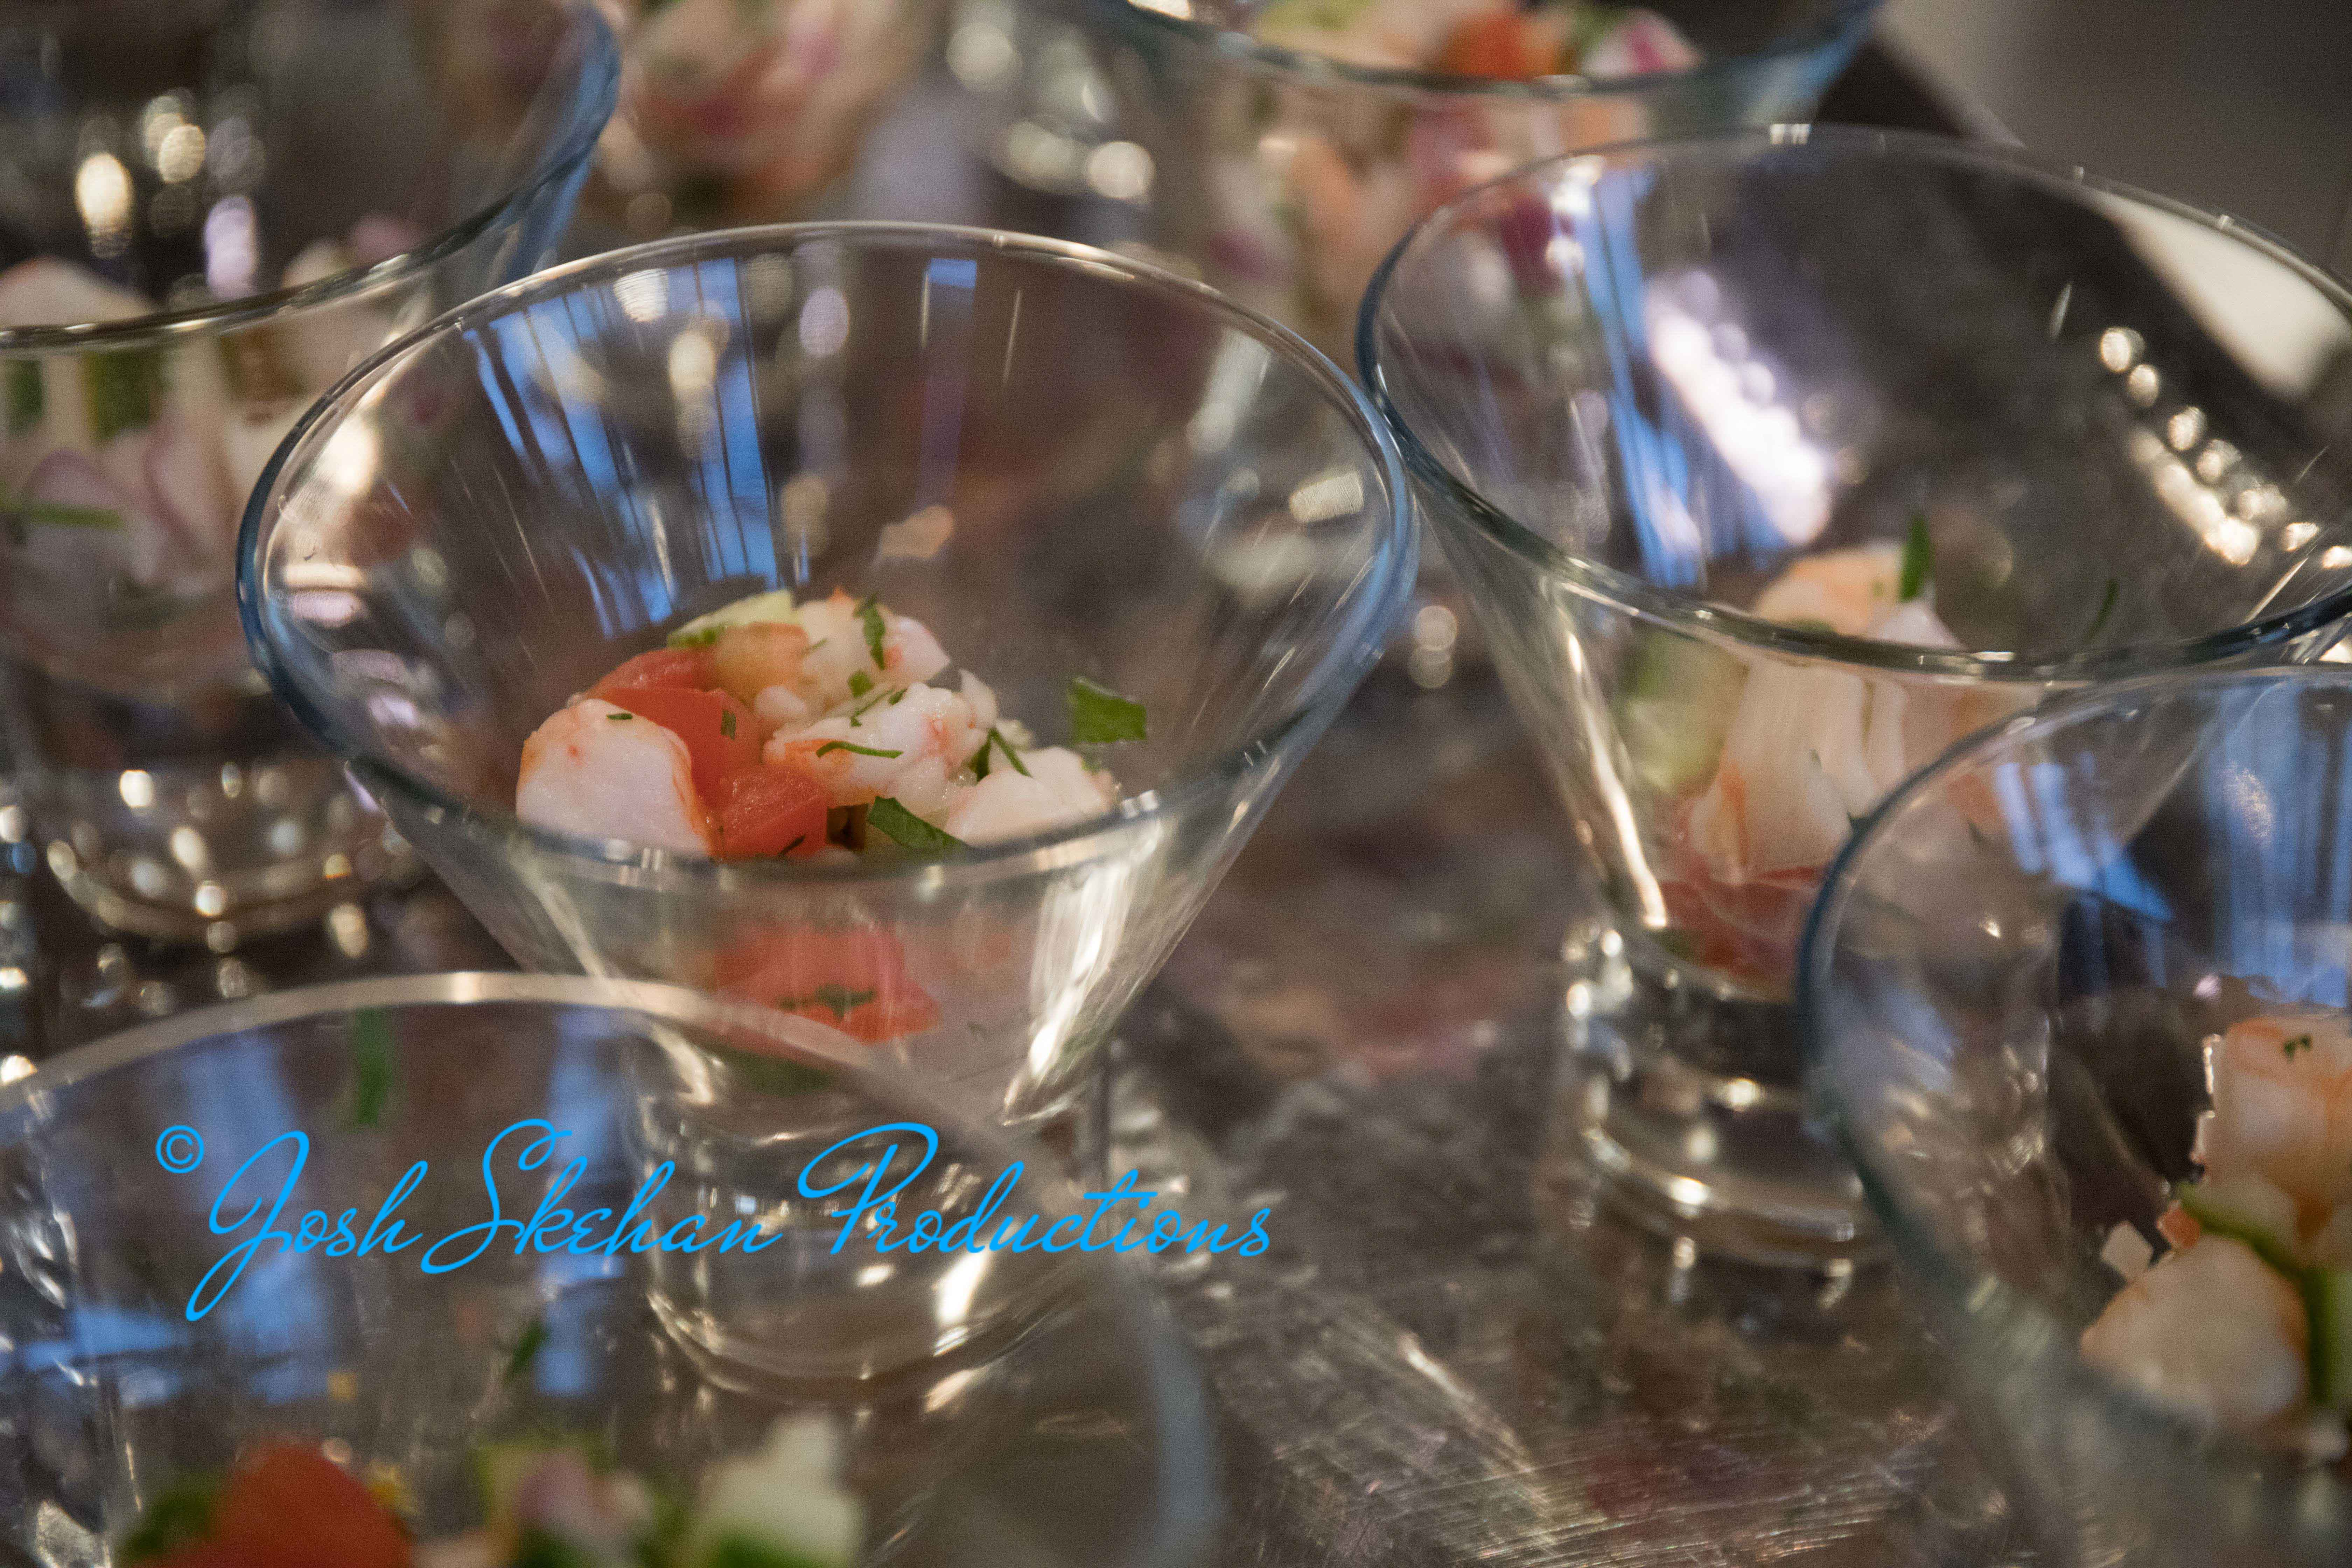 77 event photographer - scottsdale - coc